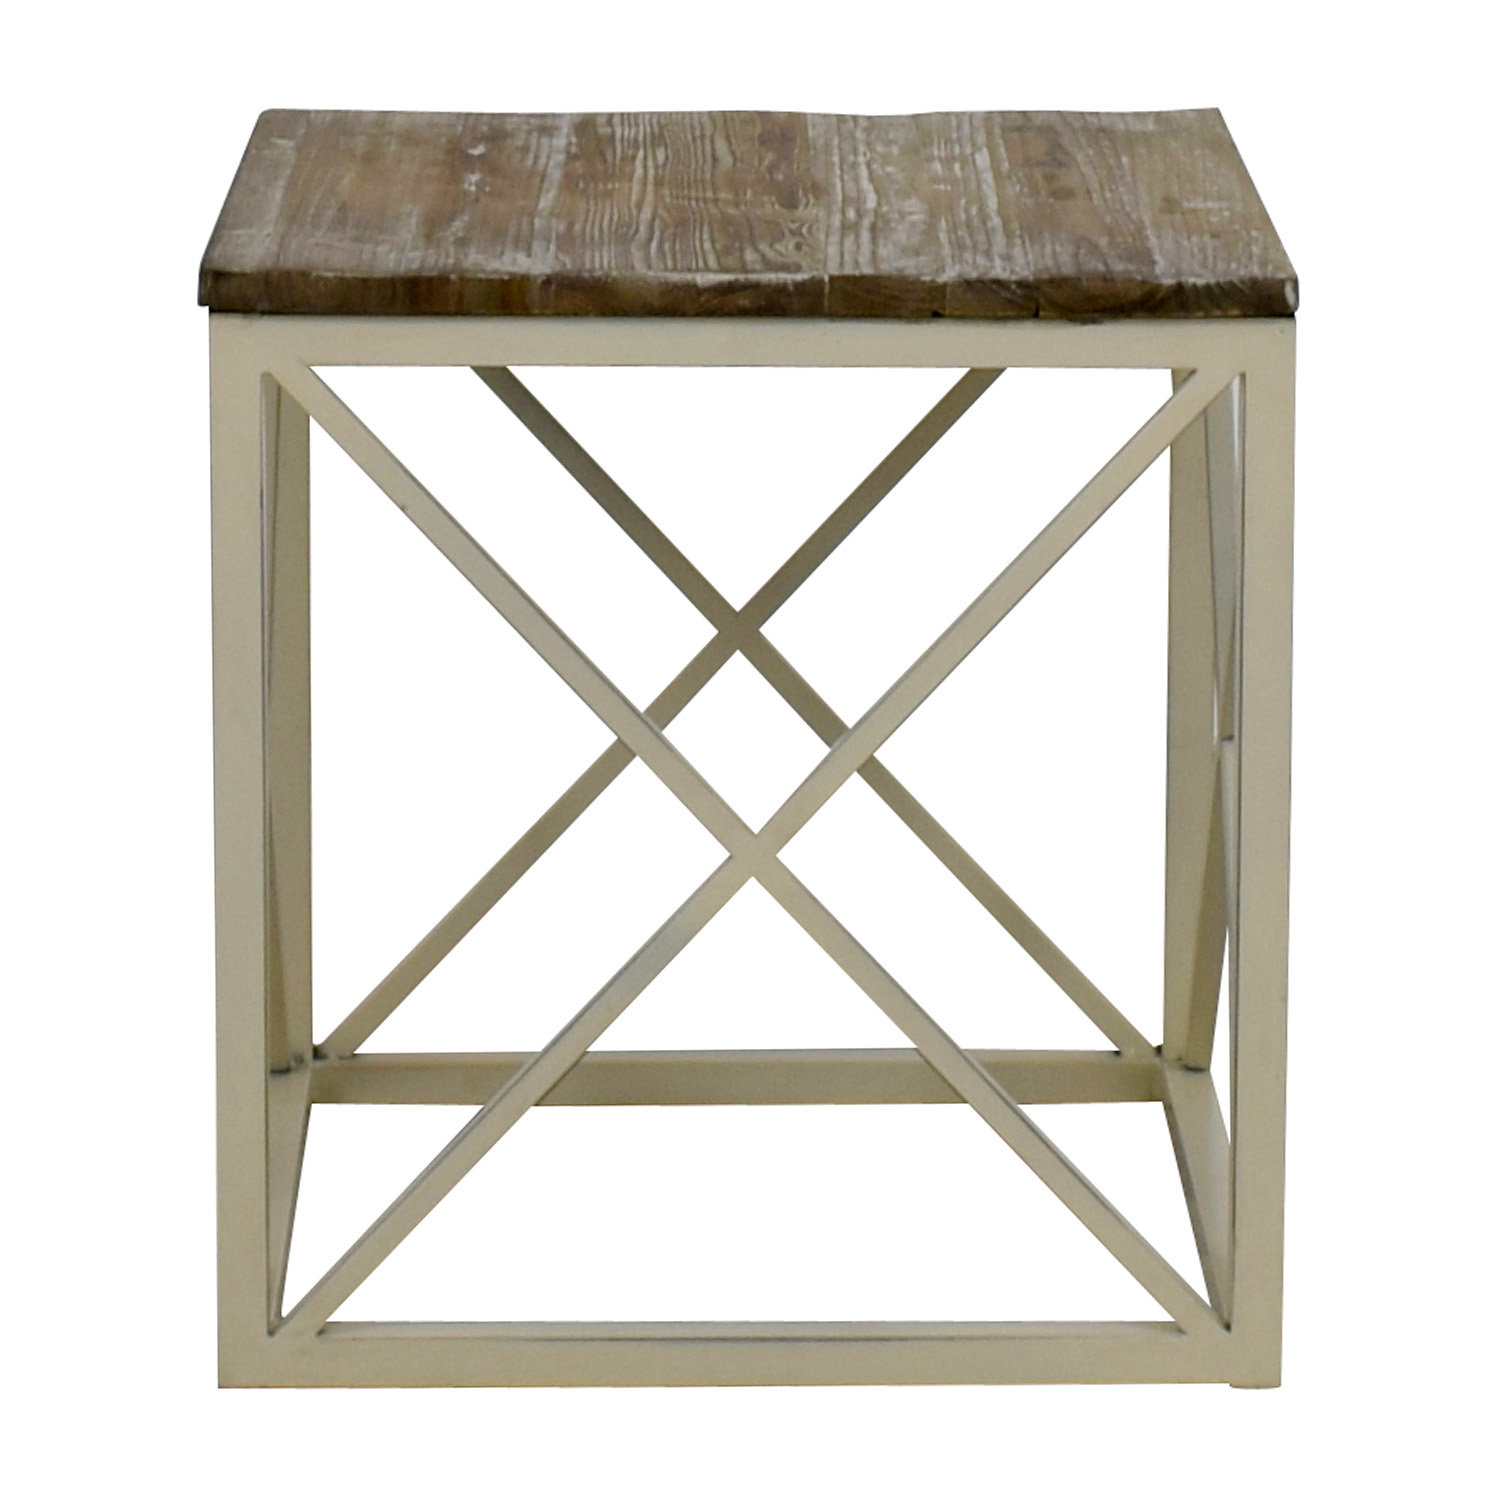 Pleasant 80 Off Wayfair Wayfair Wooden And Metal Side Table Tables Andrewgaddart Wooden Chair Designs For Living Room Andrewgaddartcom